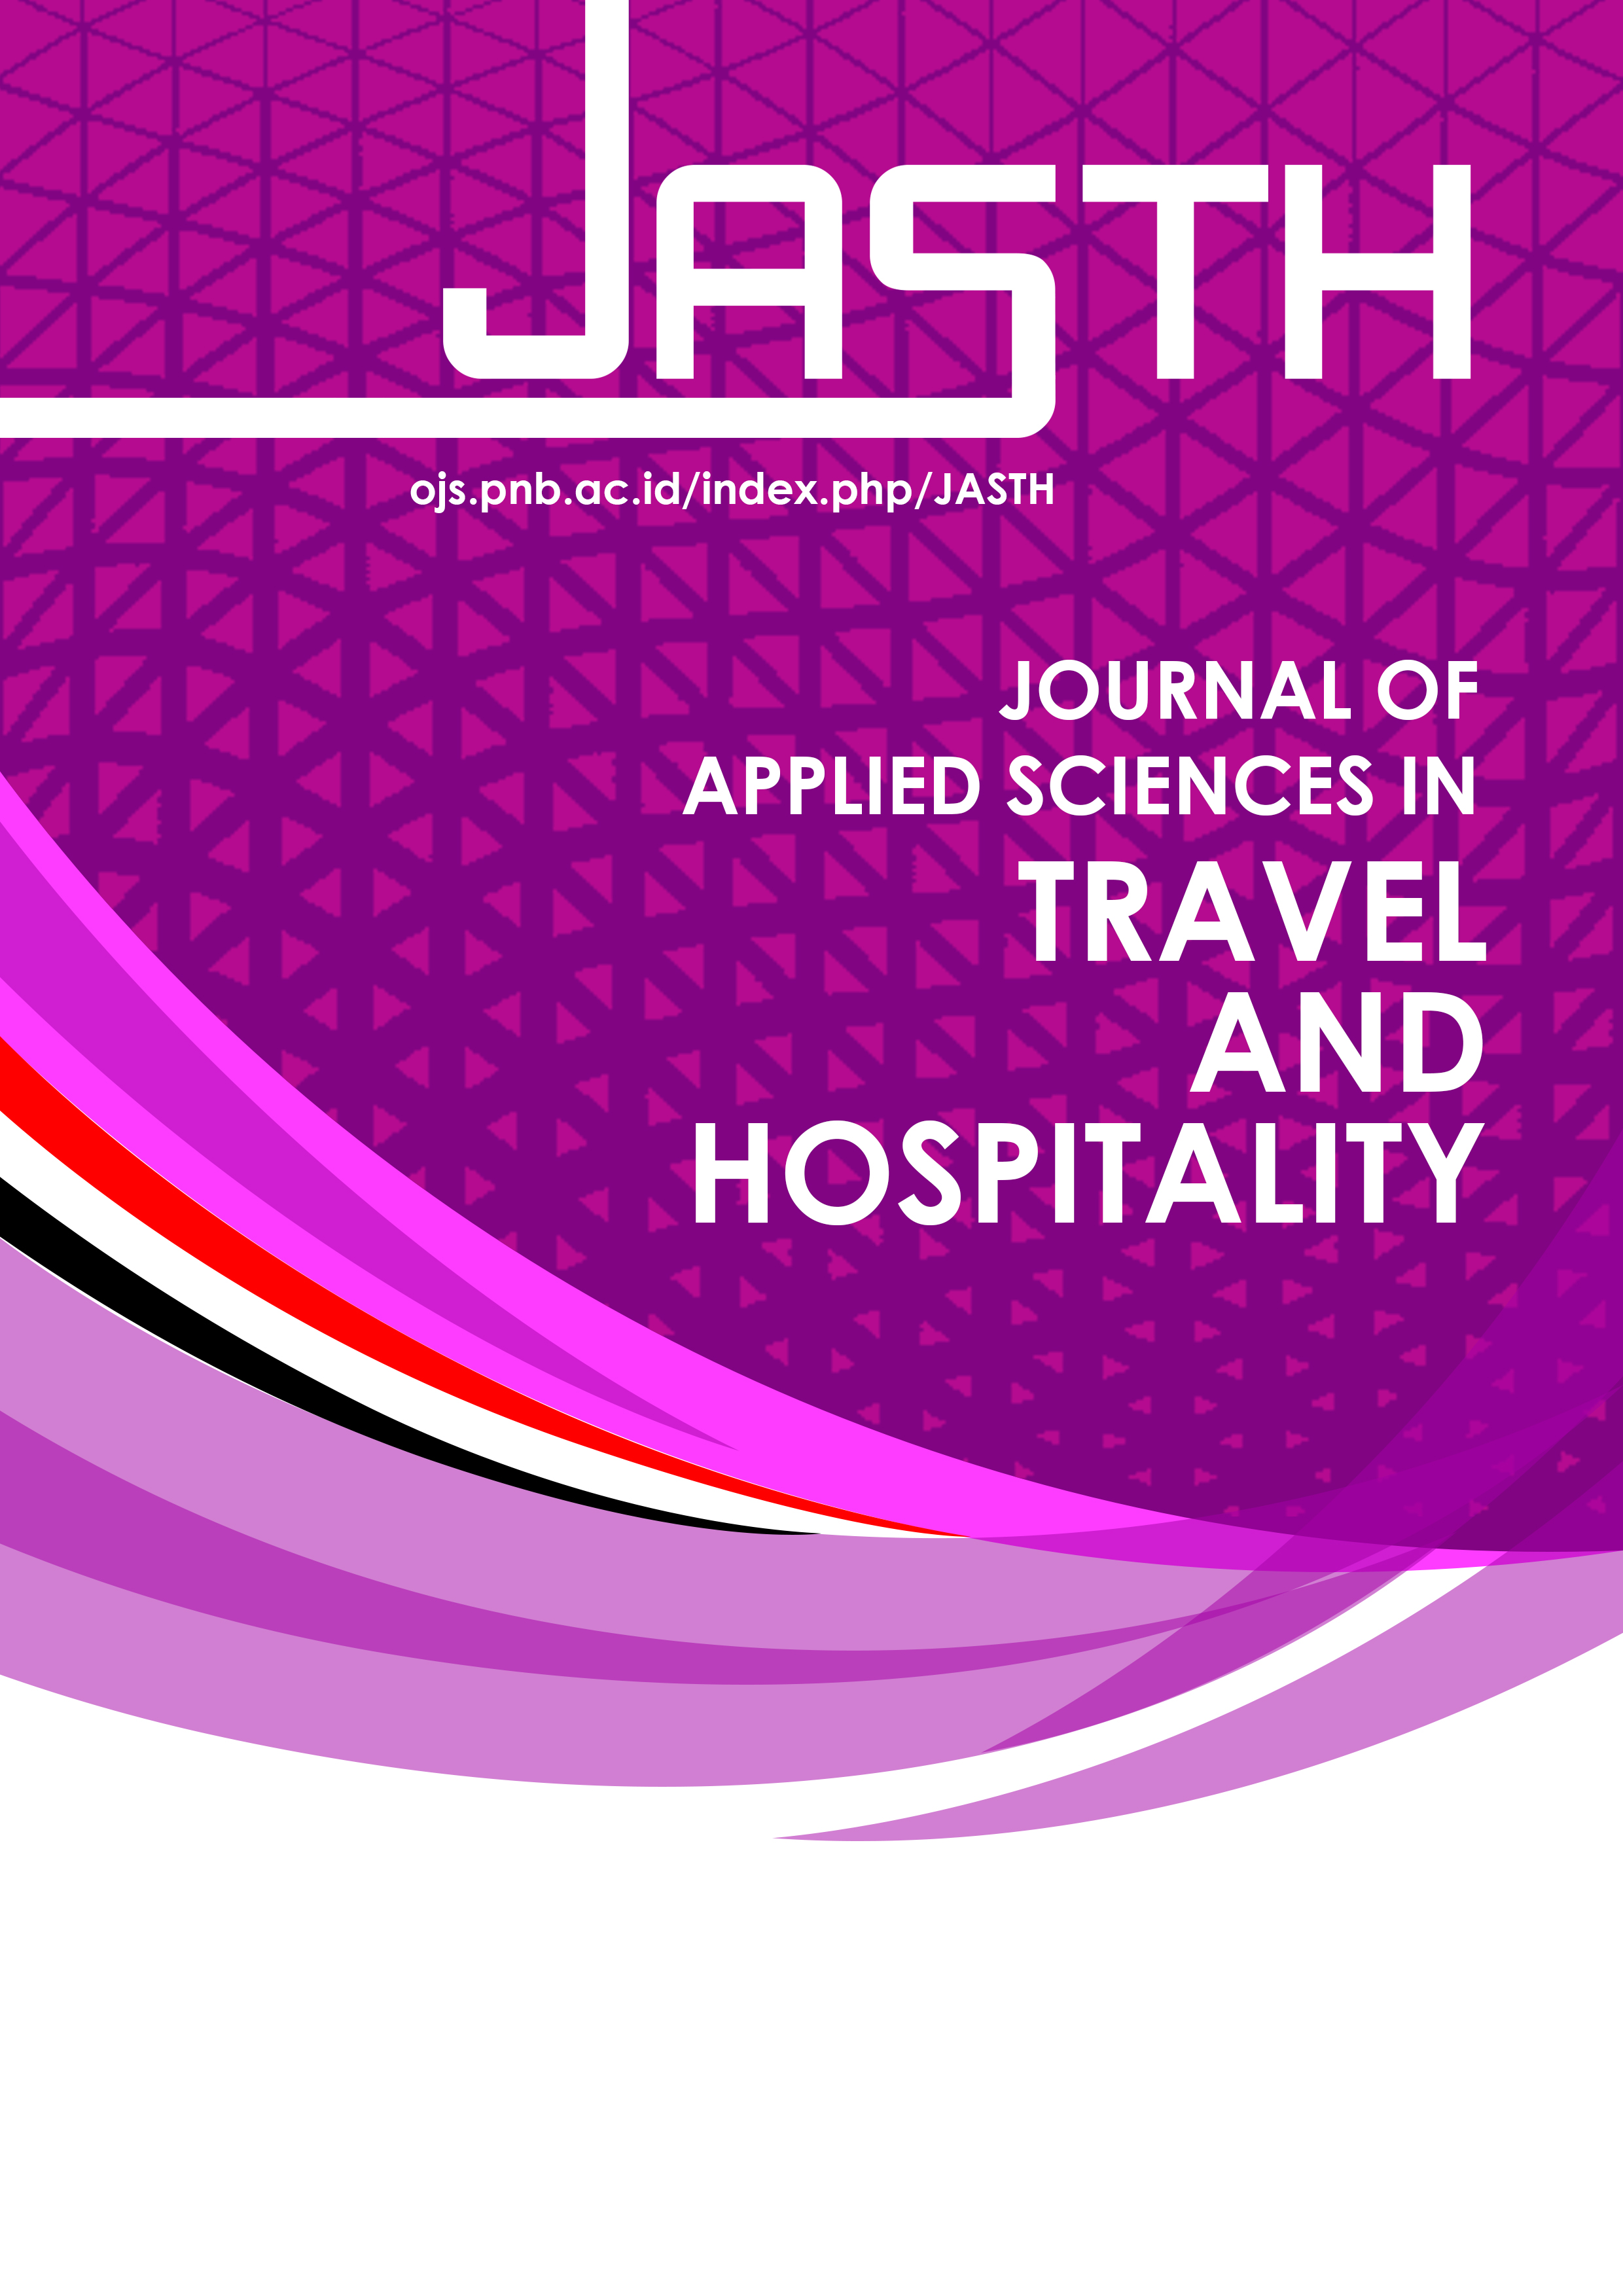 Journal of Applied Sciences in Travel and Hospitality